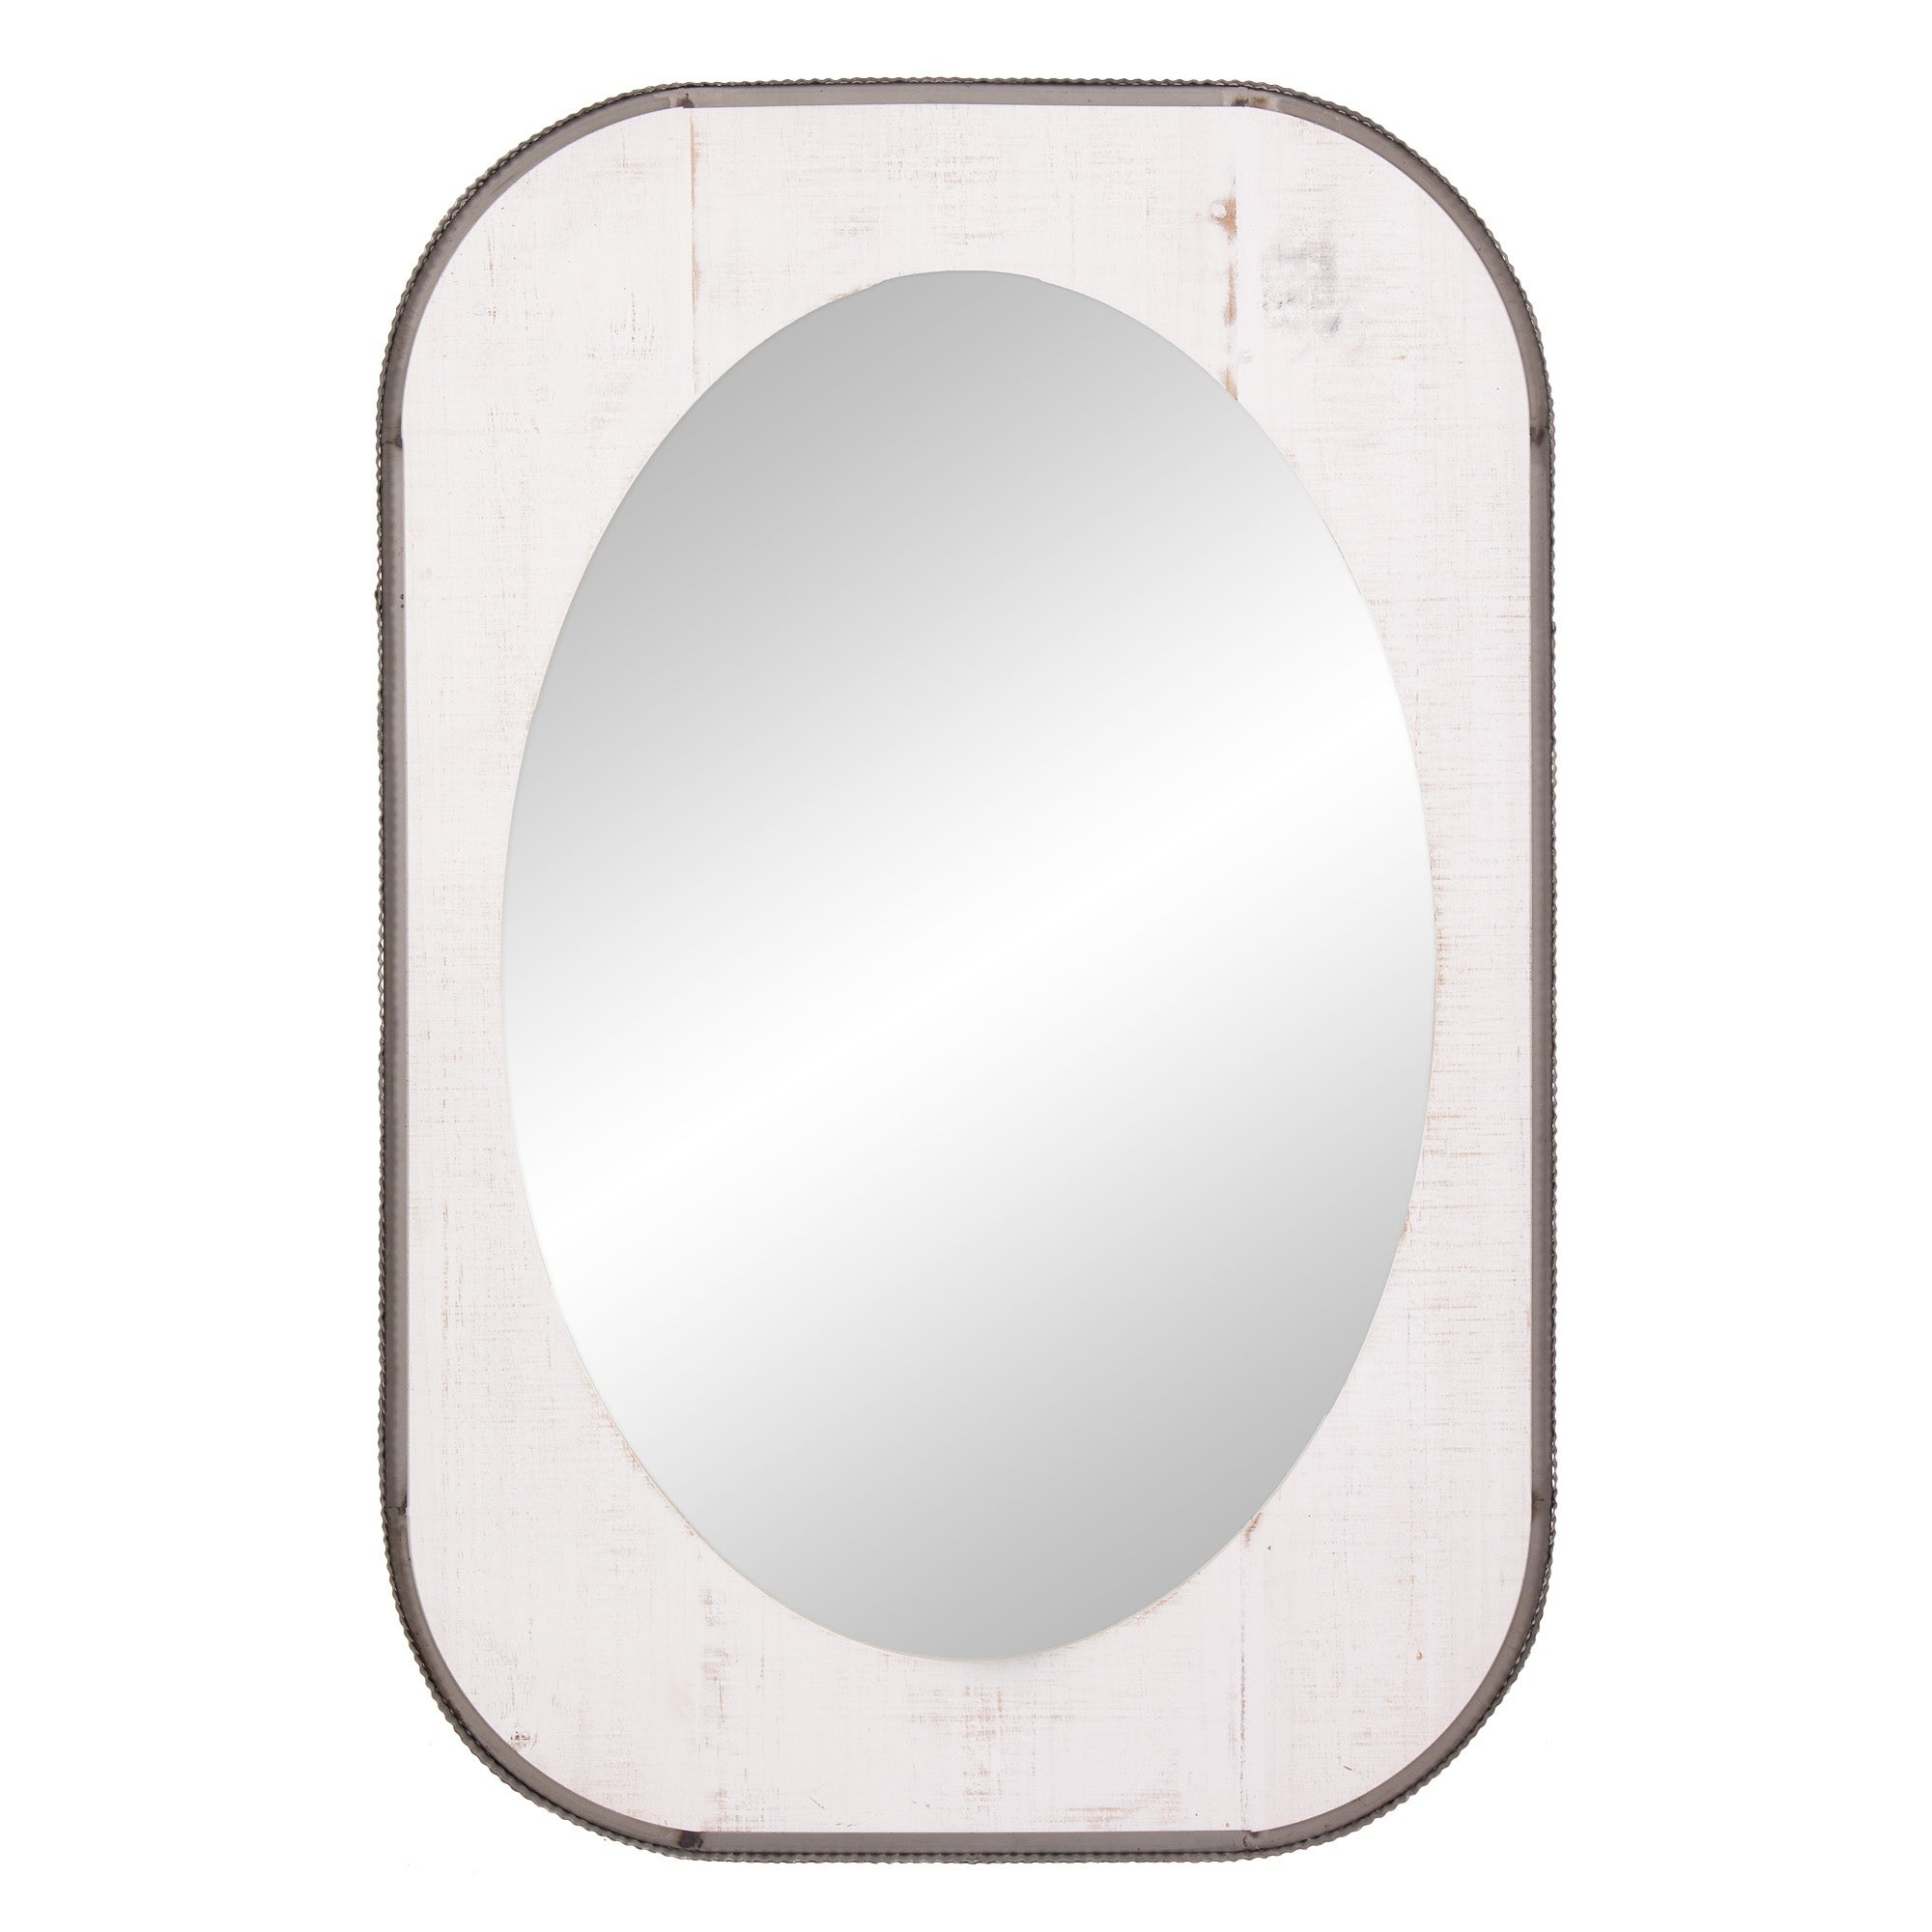 Oval Wood Wall Mirrors Regarding Best And Newest Patton Wall Decor 24x36 Oval Wood And Metal Wall Accent Mirror (View 17 of 20)